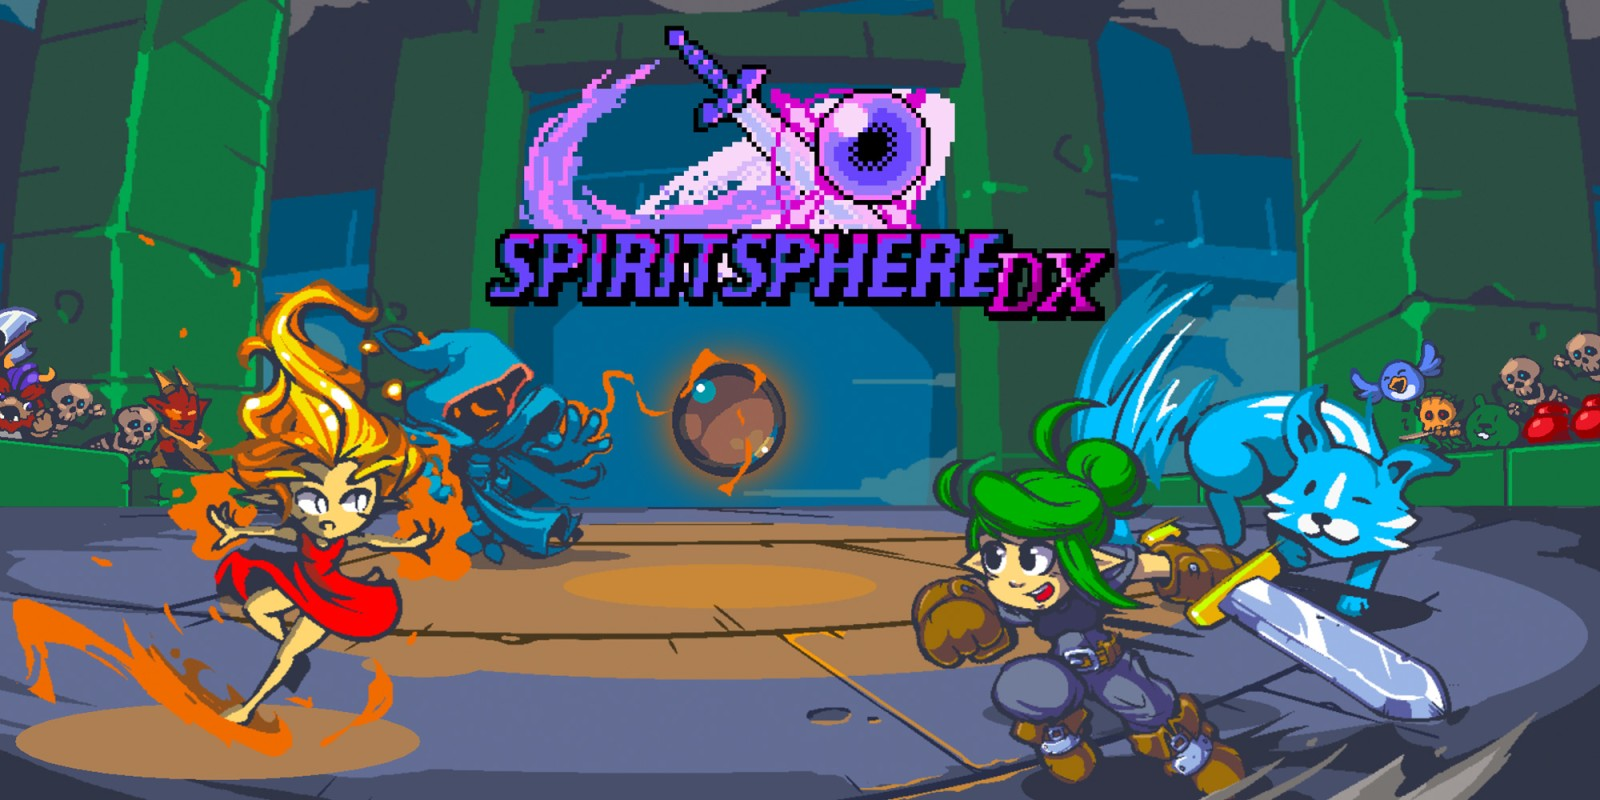 Spiritsphere dx nintendo switch download software - Dx images download ...